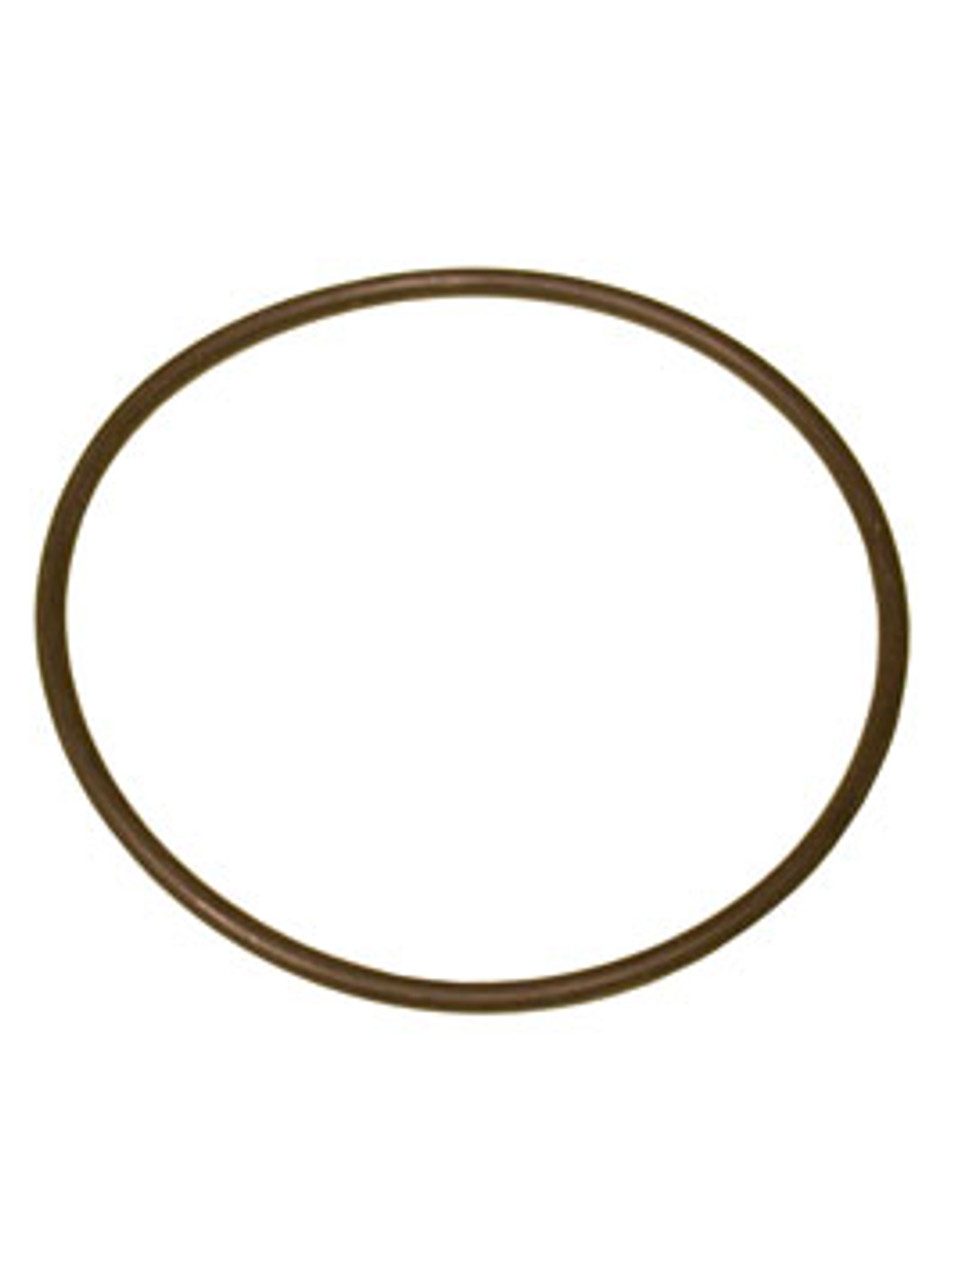 05849X --- Demco O-Ring for Master Cylinder Cap